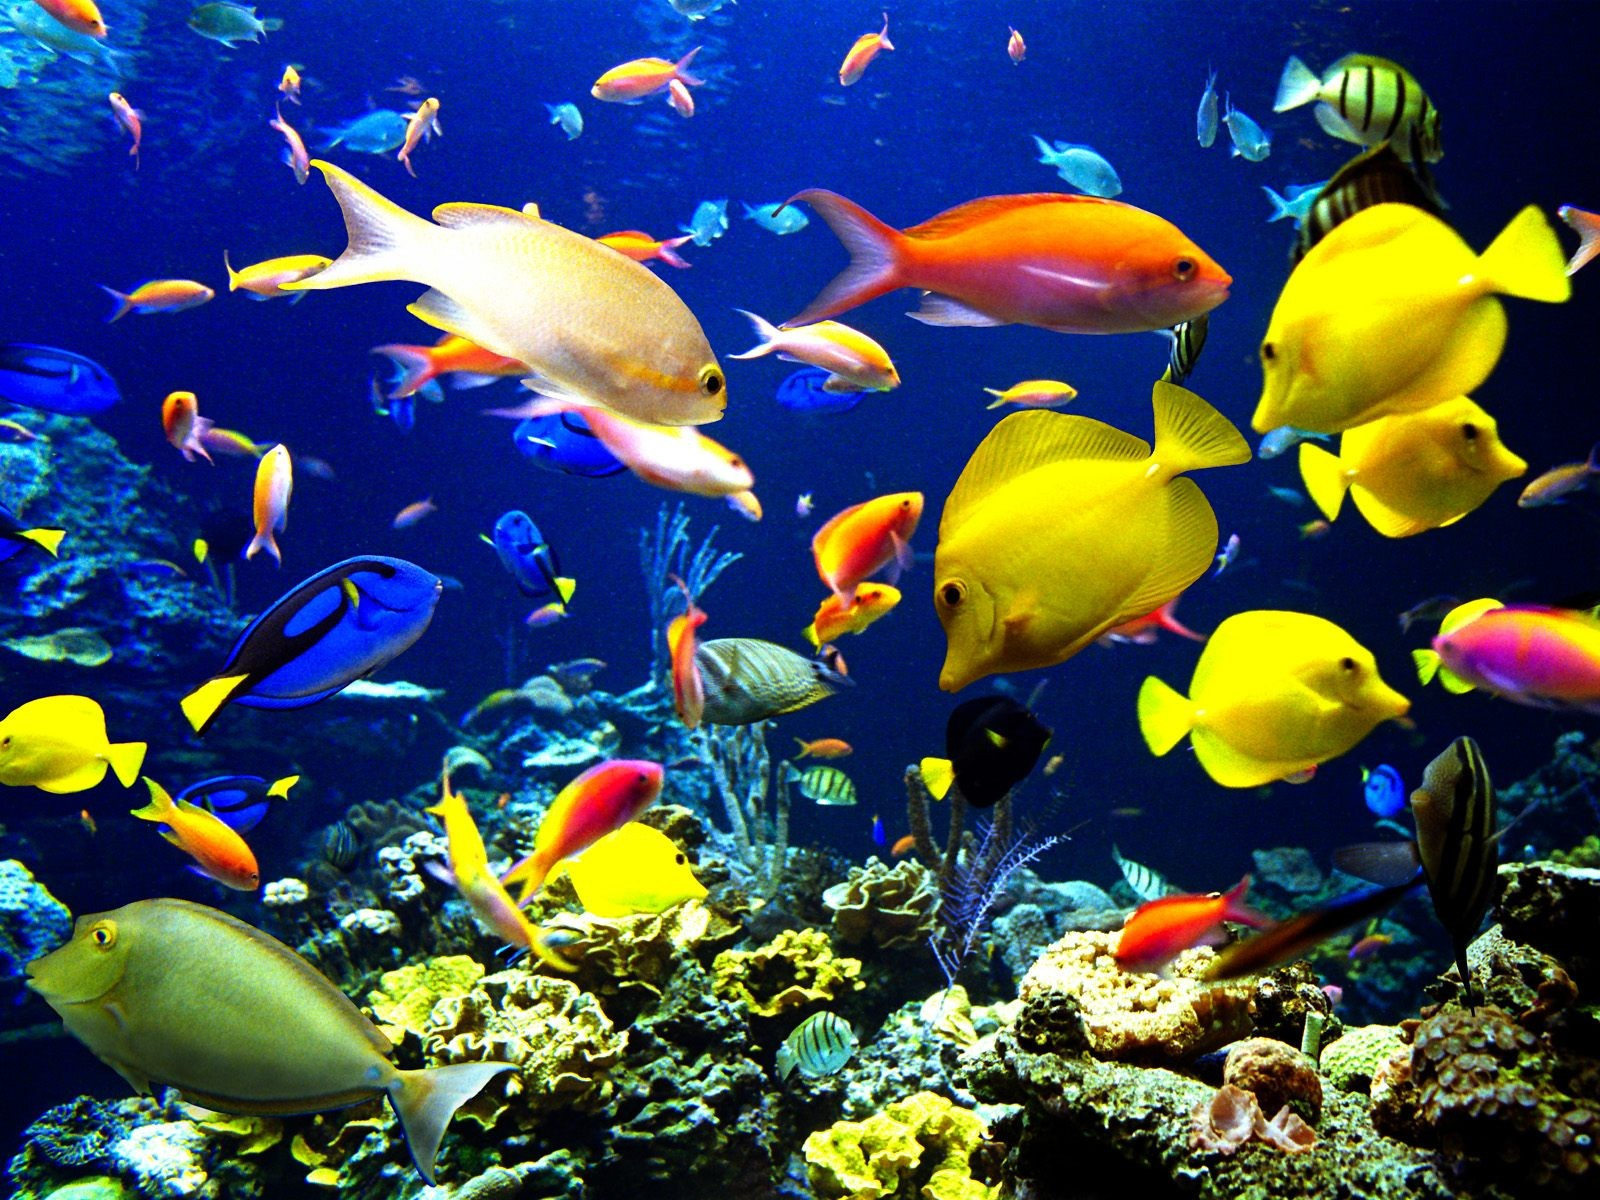 Tropical Harmony tropical harmony fish sea ocean underwater